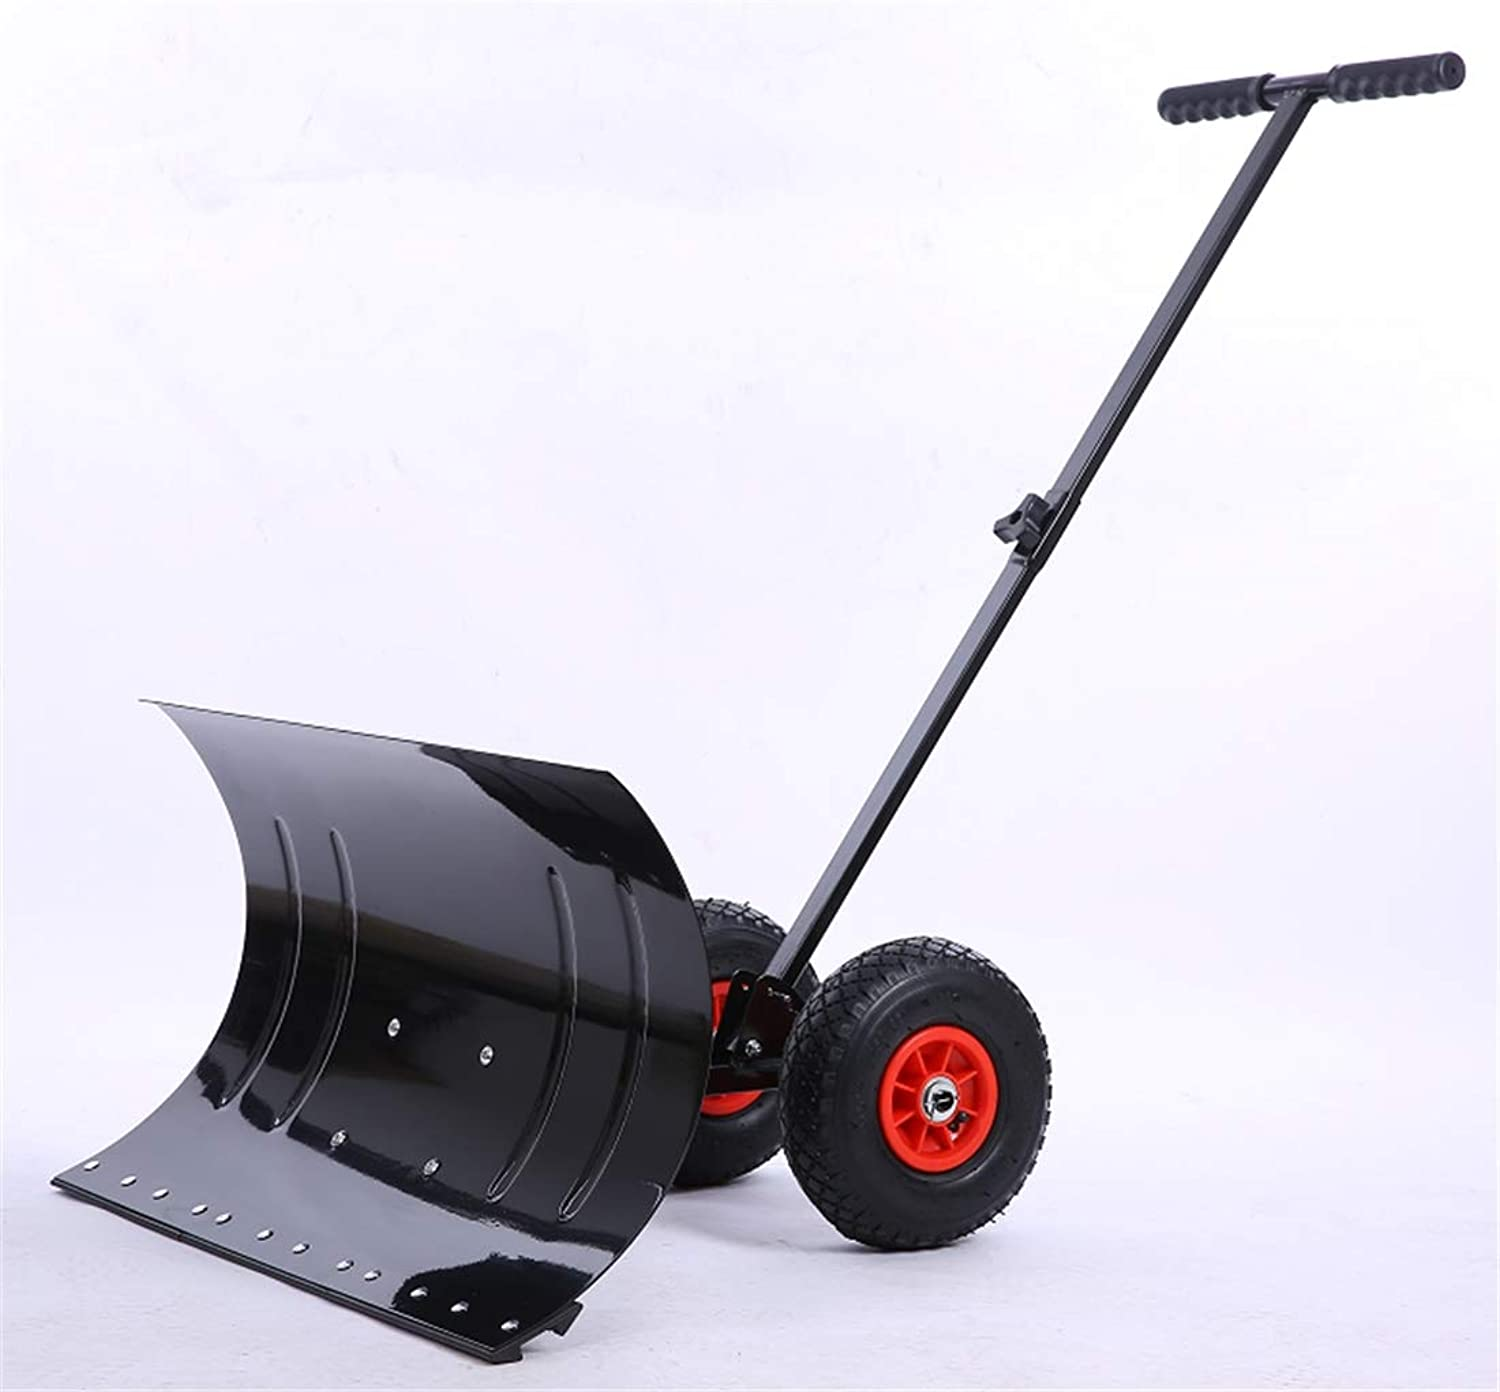 Push Snow Shovel, Double Wheel Shovel with Snow Pushing Device, Easy to Operate and Labor Saving